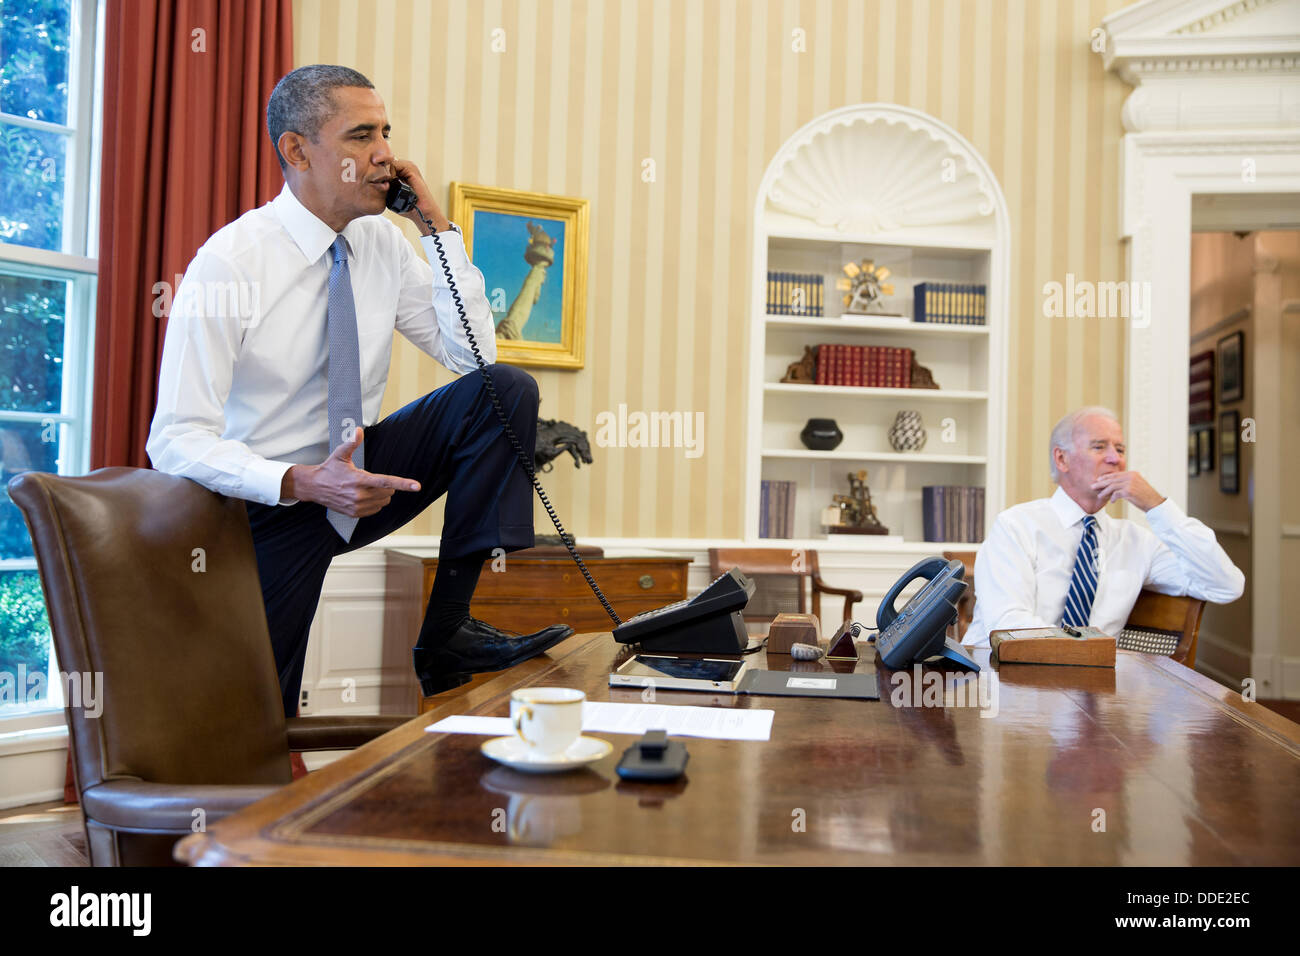 obama oval office. us president barack obama talks on the phone in oval office with speaker of house john boehner situation syria as vice joe biden s